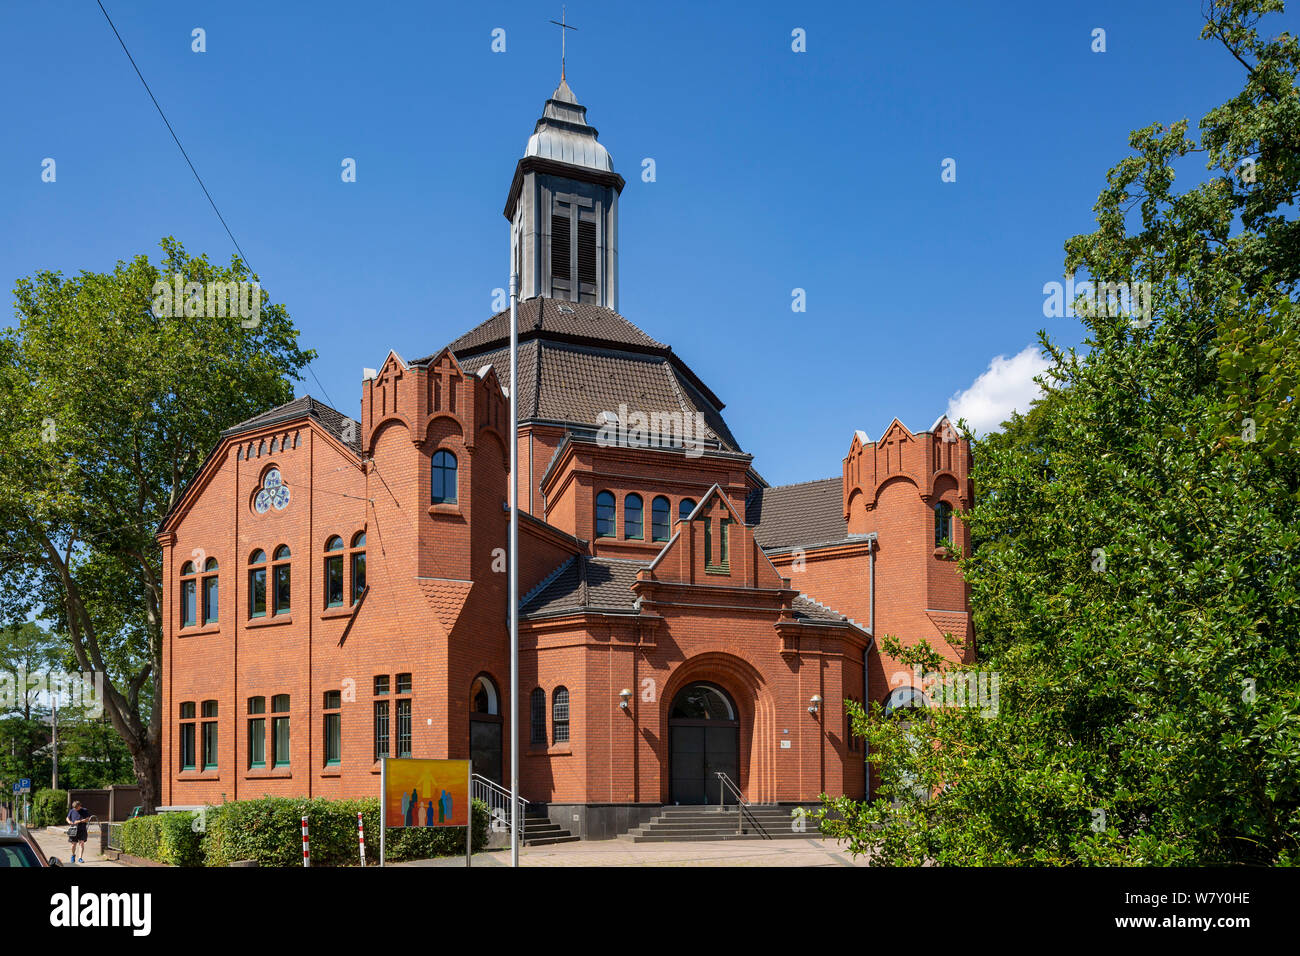 D-Oberhausen, Ruhr area, Lower Rhine, Rhineland, North Rhine-Westphalia, NRW, D-Oberhausen-Lirich, Evangelic Paulus Church, brick building, belonging to Evangelic Emmaus Congregation Oberhausen Stock Photo